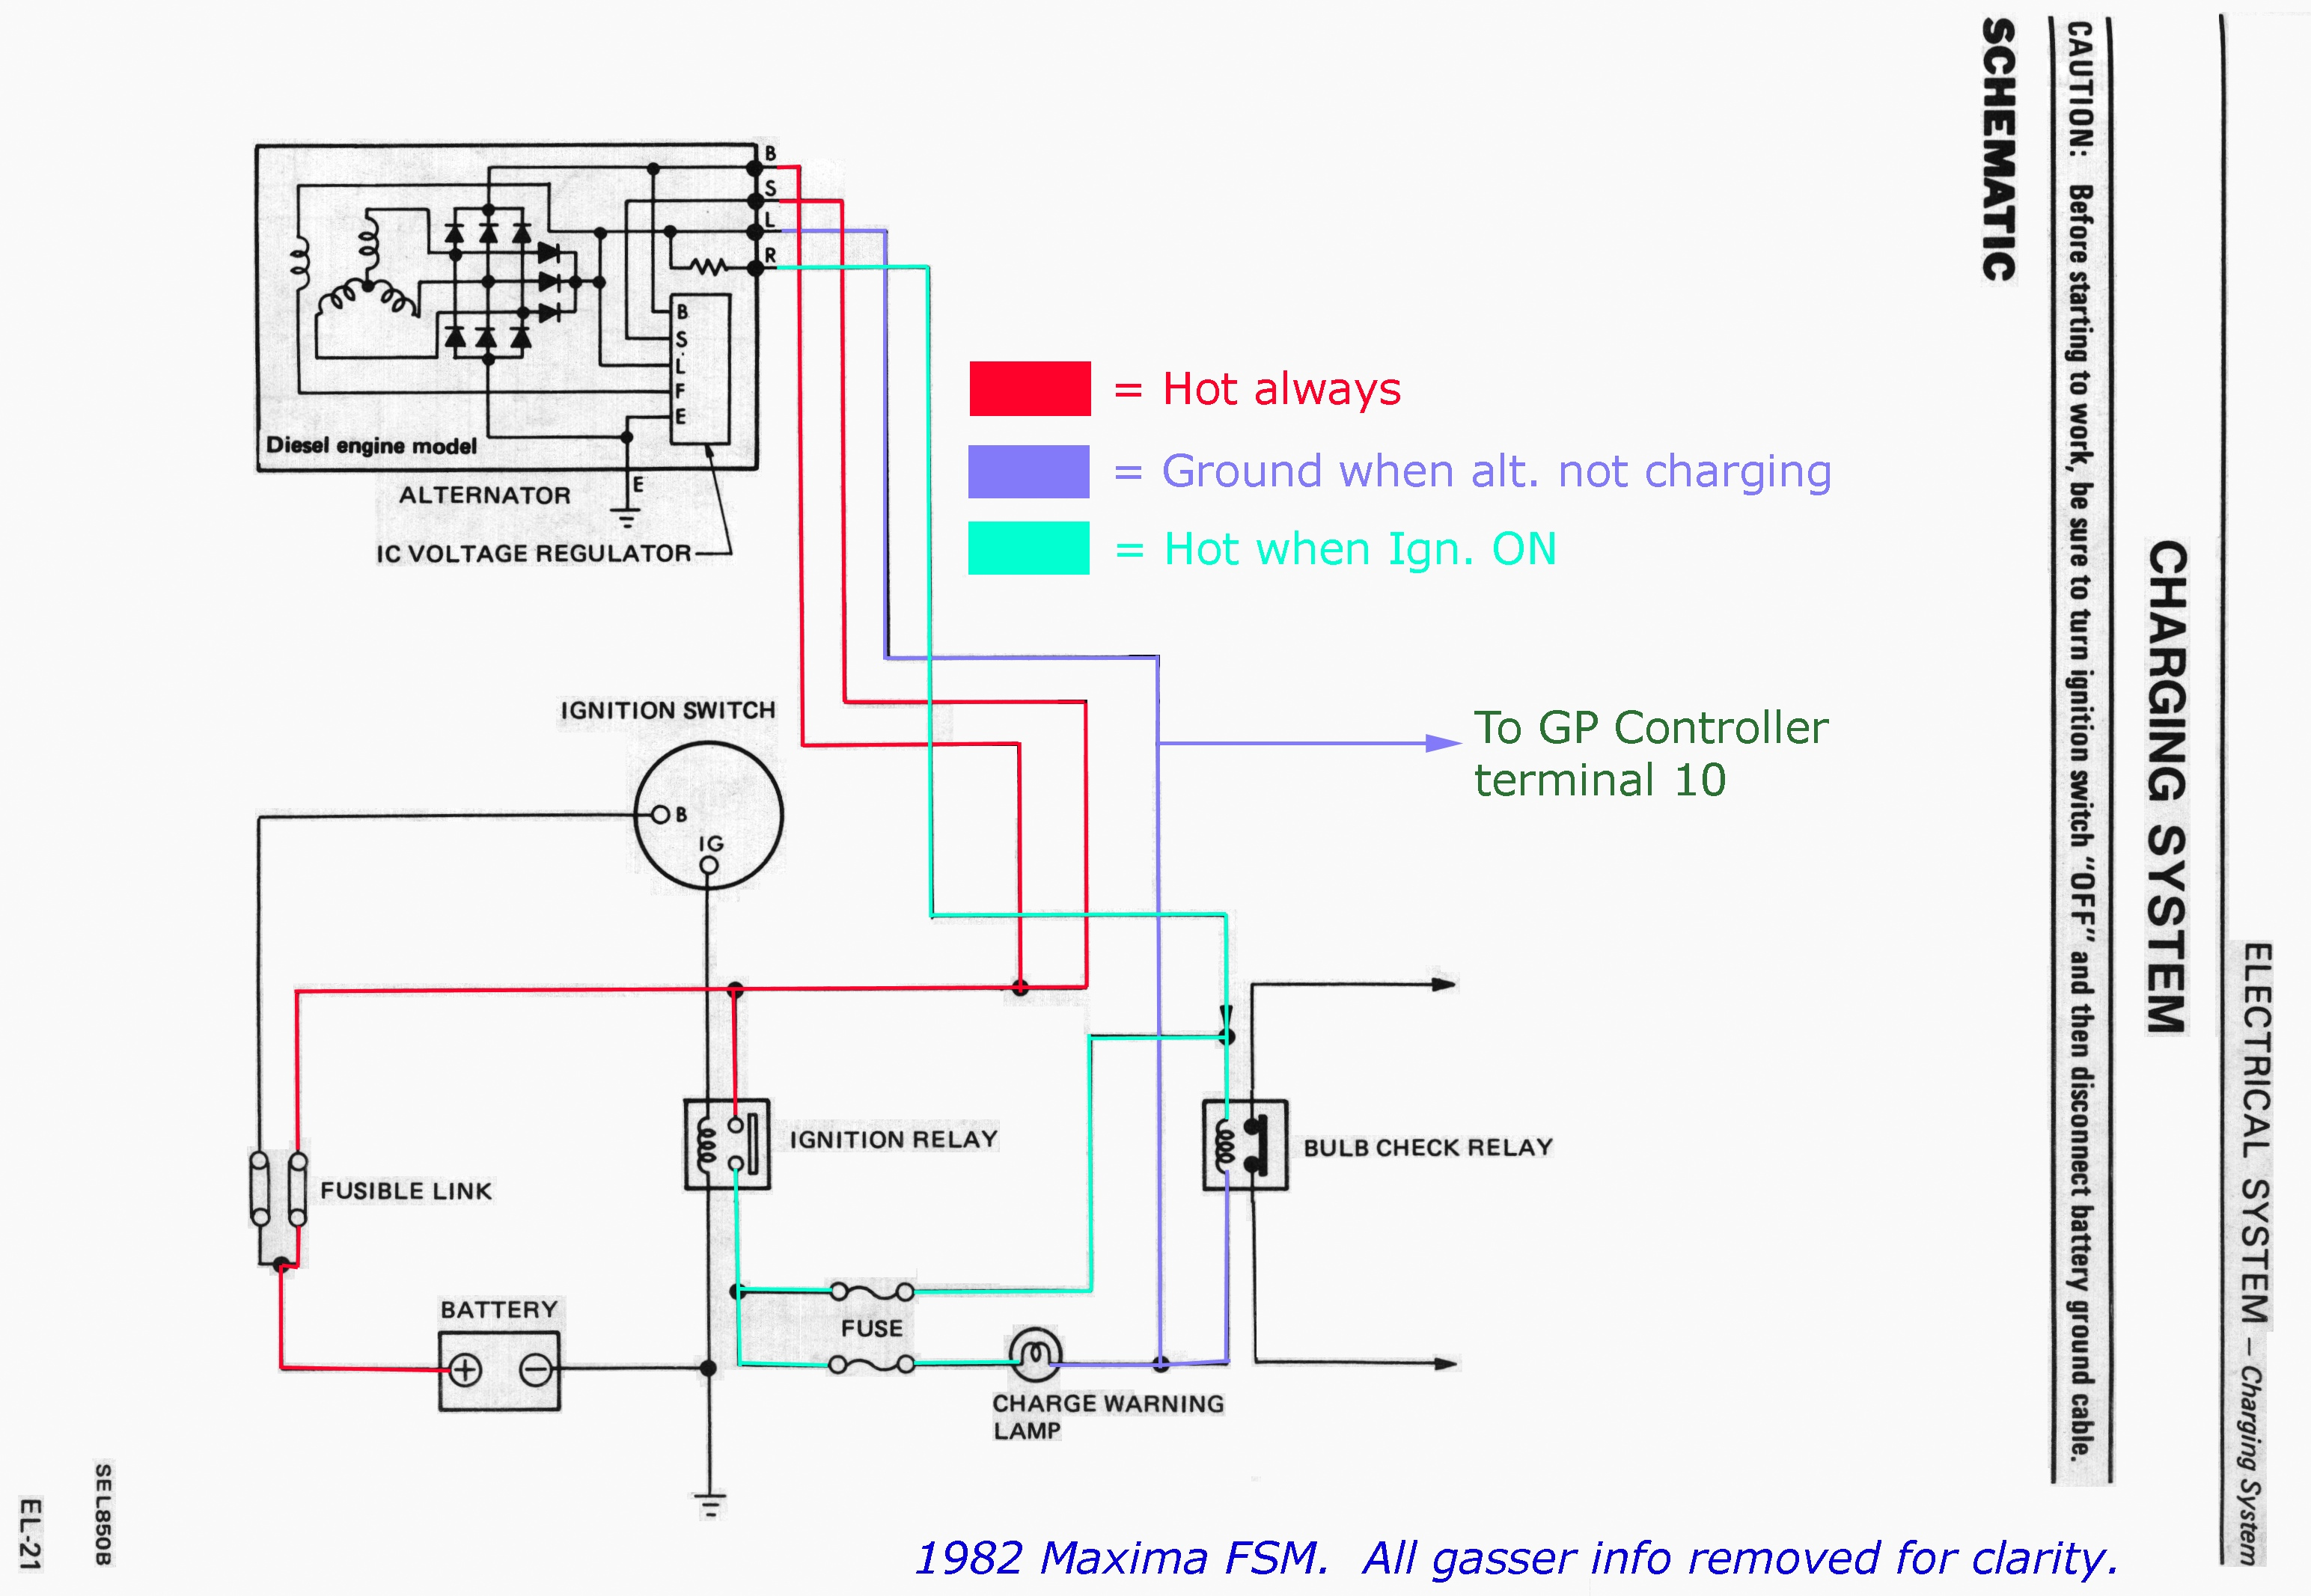 FSM_1982_EL 021 1b nissan alternator wiring diagram nissan forklift wiring diagram alternator relay diagram at gsmx.co